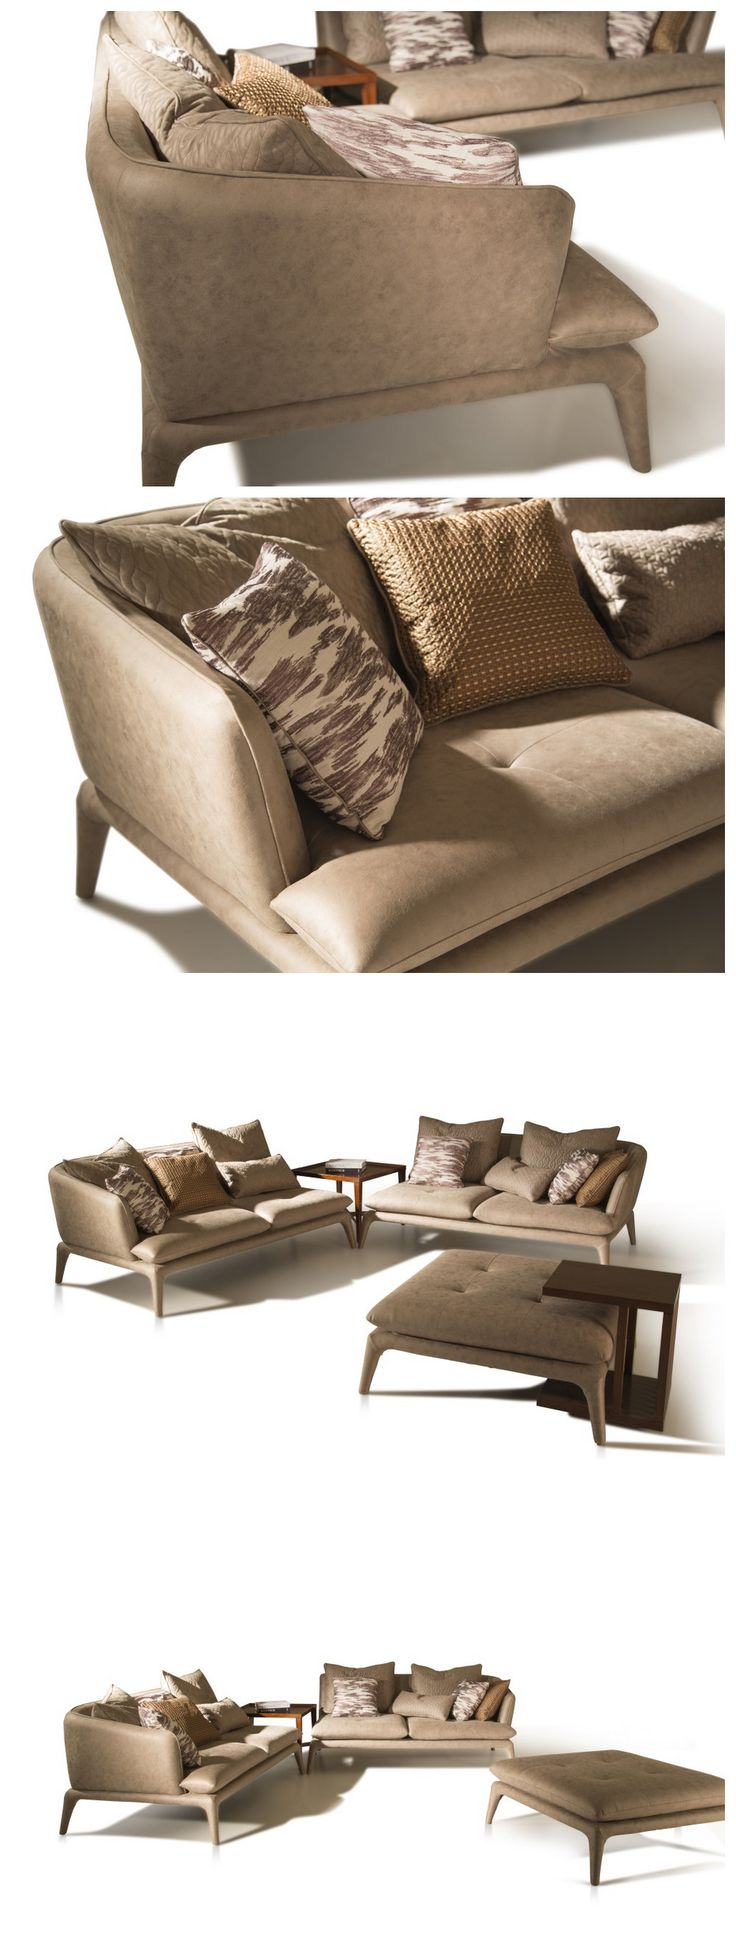 contemporary living room furniture latest design modern sofa  new design modern sofa set #sofaset #sofa #cocheen #modernsofa #cocheendesign #livingroomsofa #furniture #newdesign #sectionalsofa #homefurniture #couch #furniturefactory  contact:jennifer@cocheen.com  online store link: cocheenfurniture.en.alibaba.com